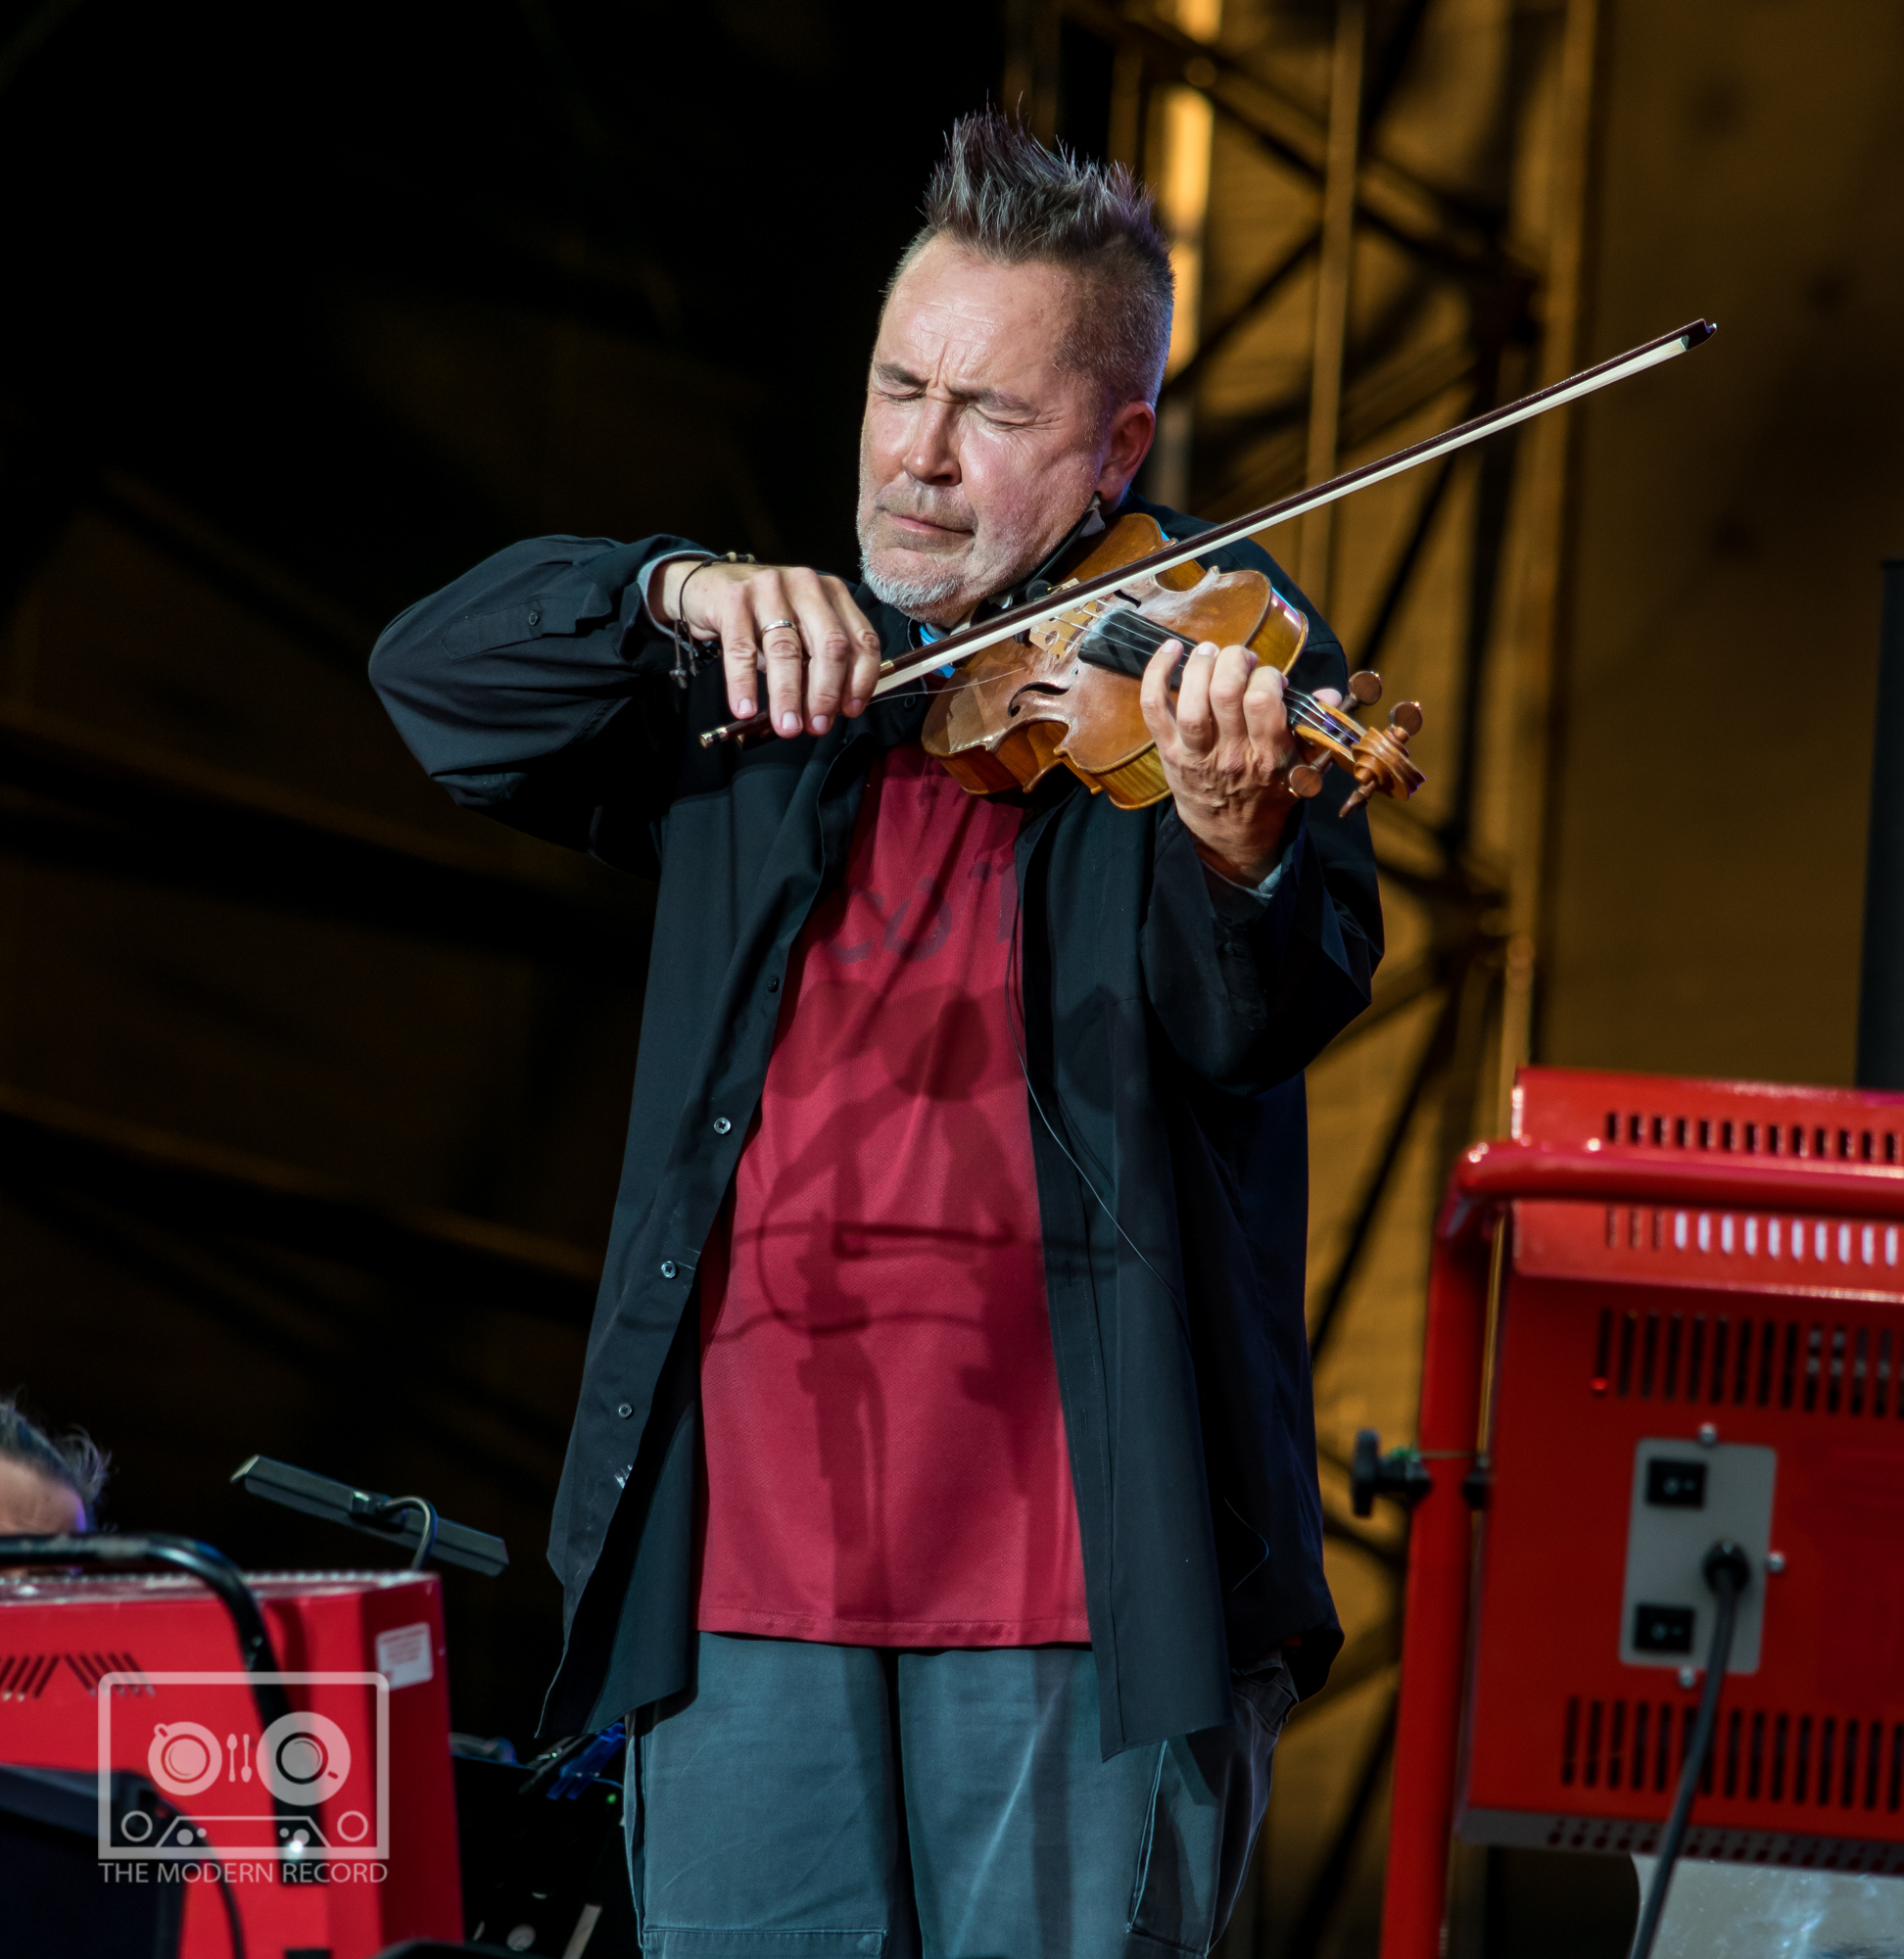 NIGEL KENNEDY CLOSING DAY ONE AT BBC BIGGEST WEEKEND IN PERTH - 25.05.2018  PICTURE BY: STEPHEN WILSON PHOTOGRAPHY